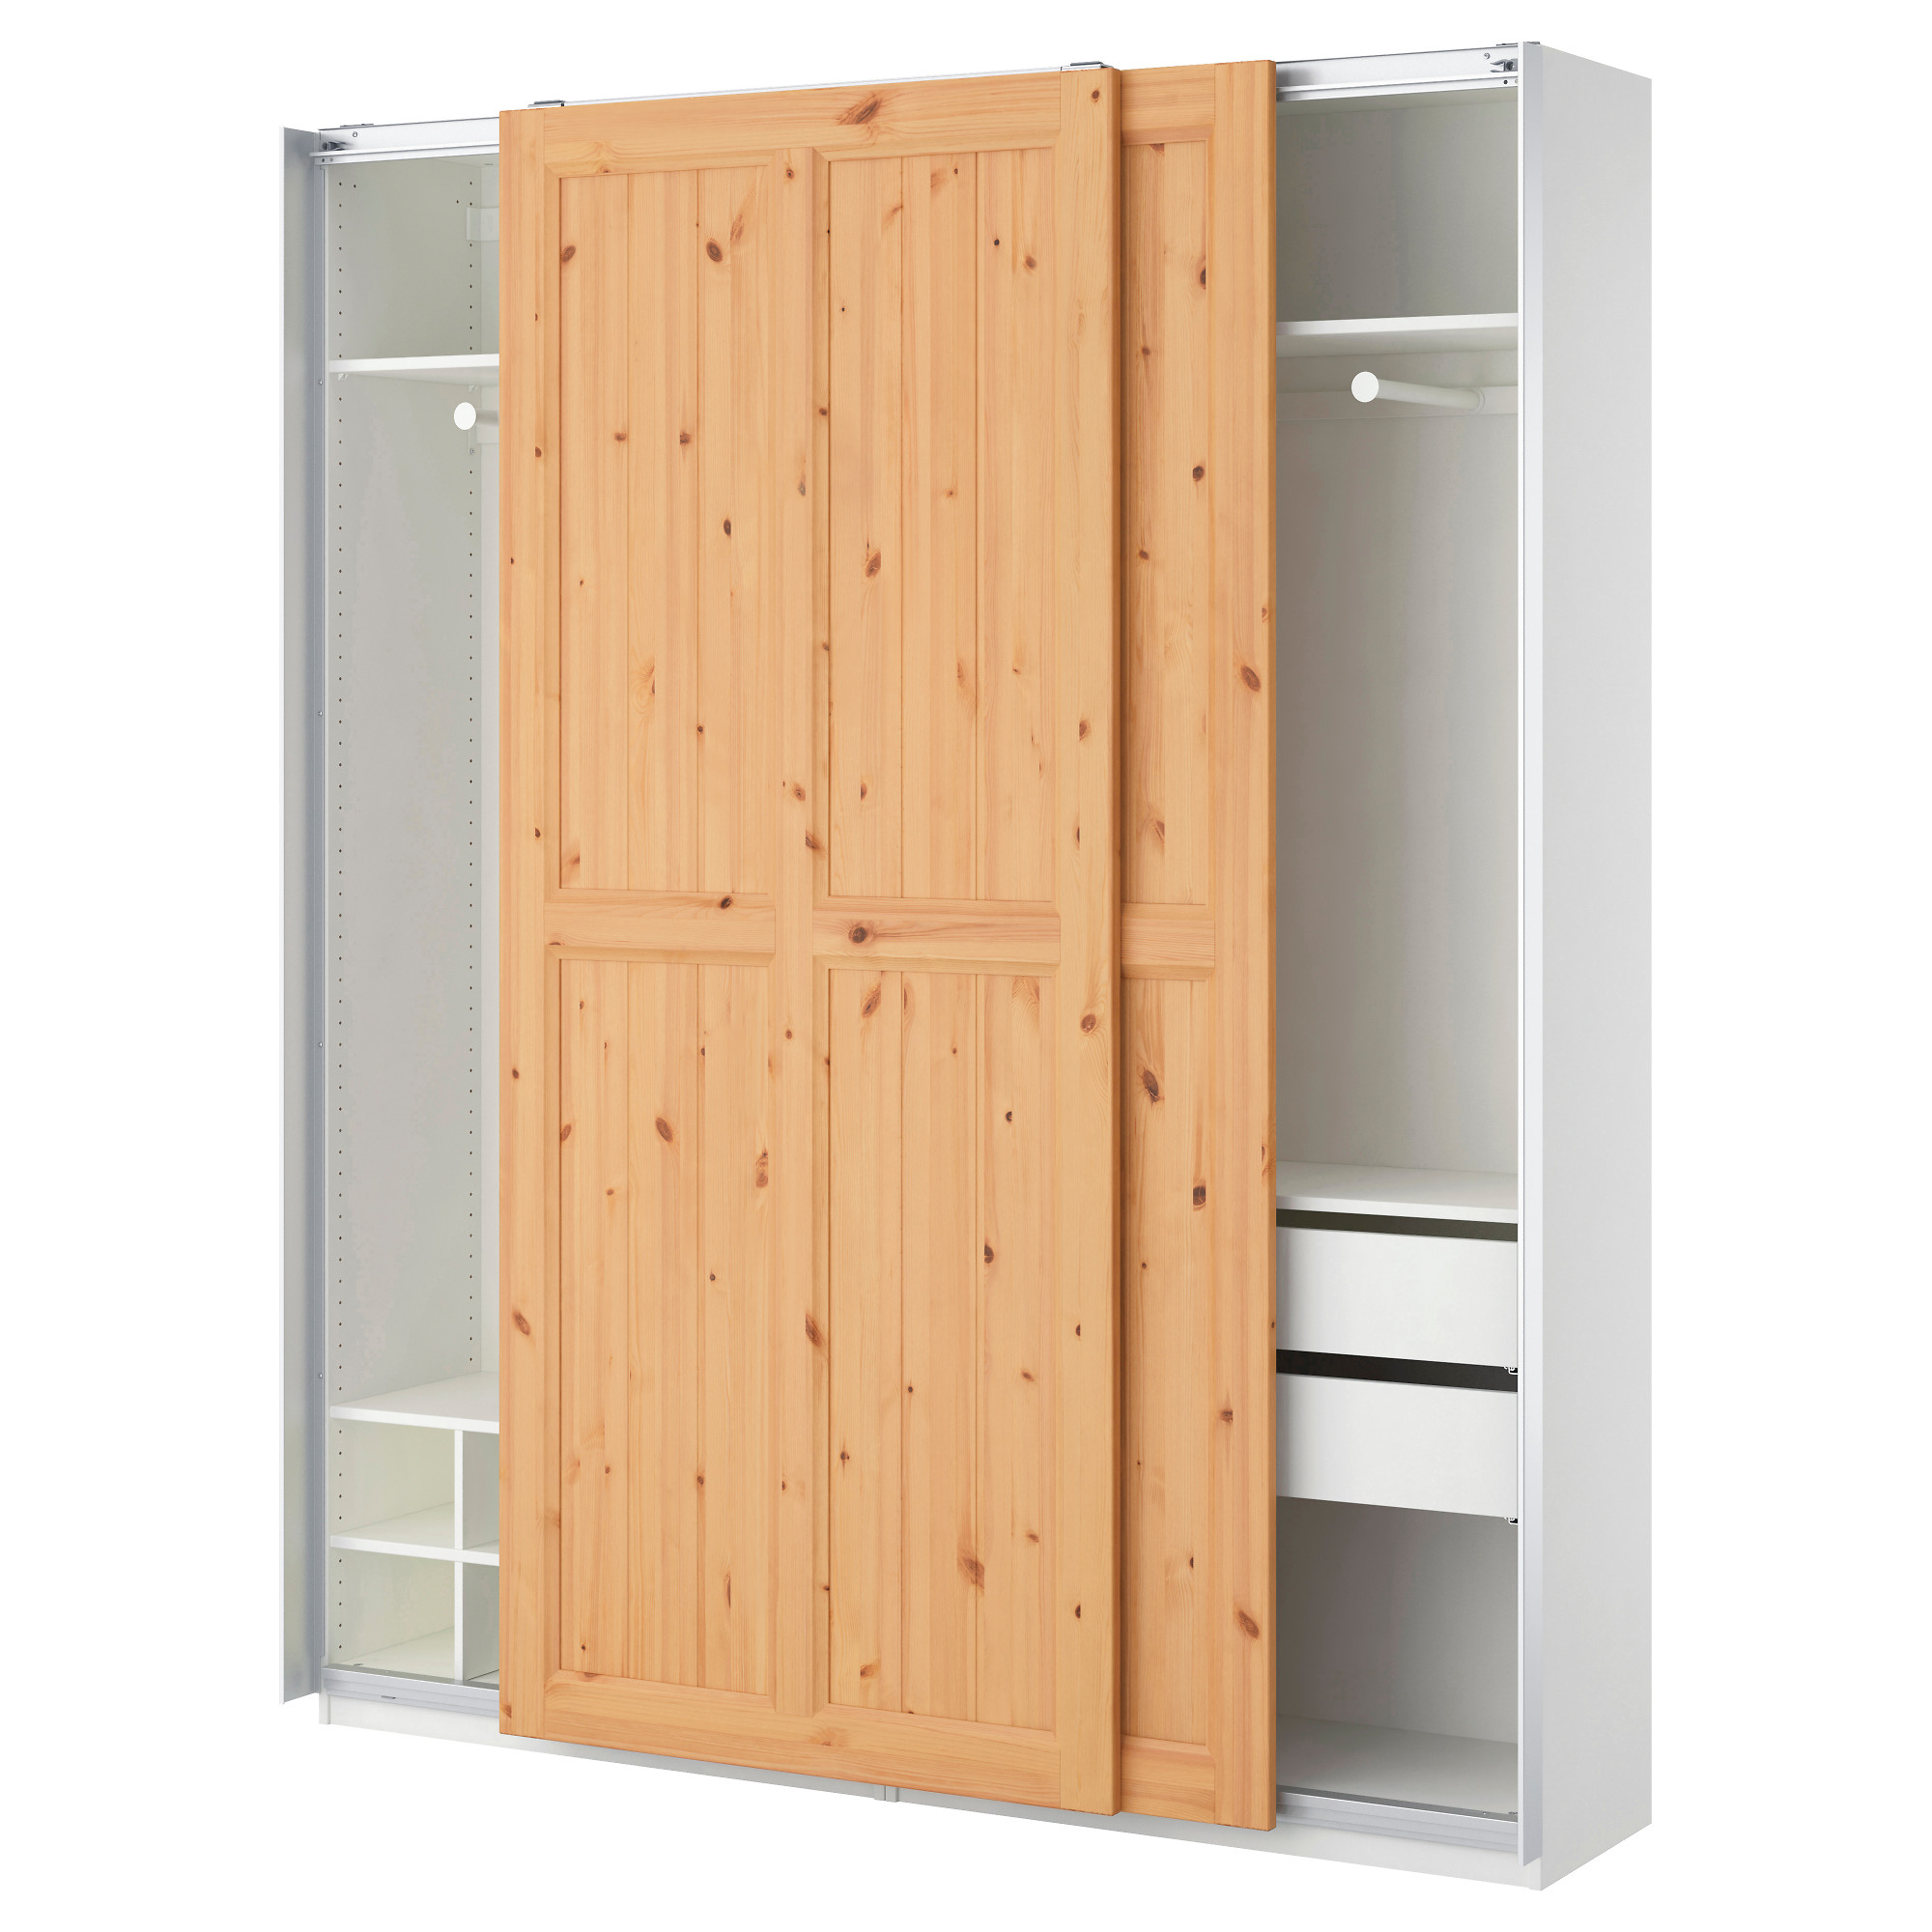 interior sliding doors ikea photo - 7